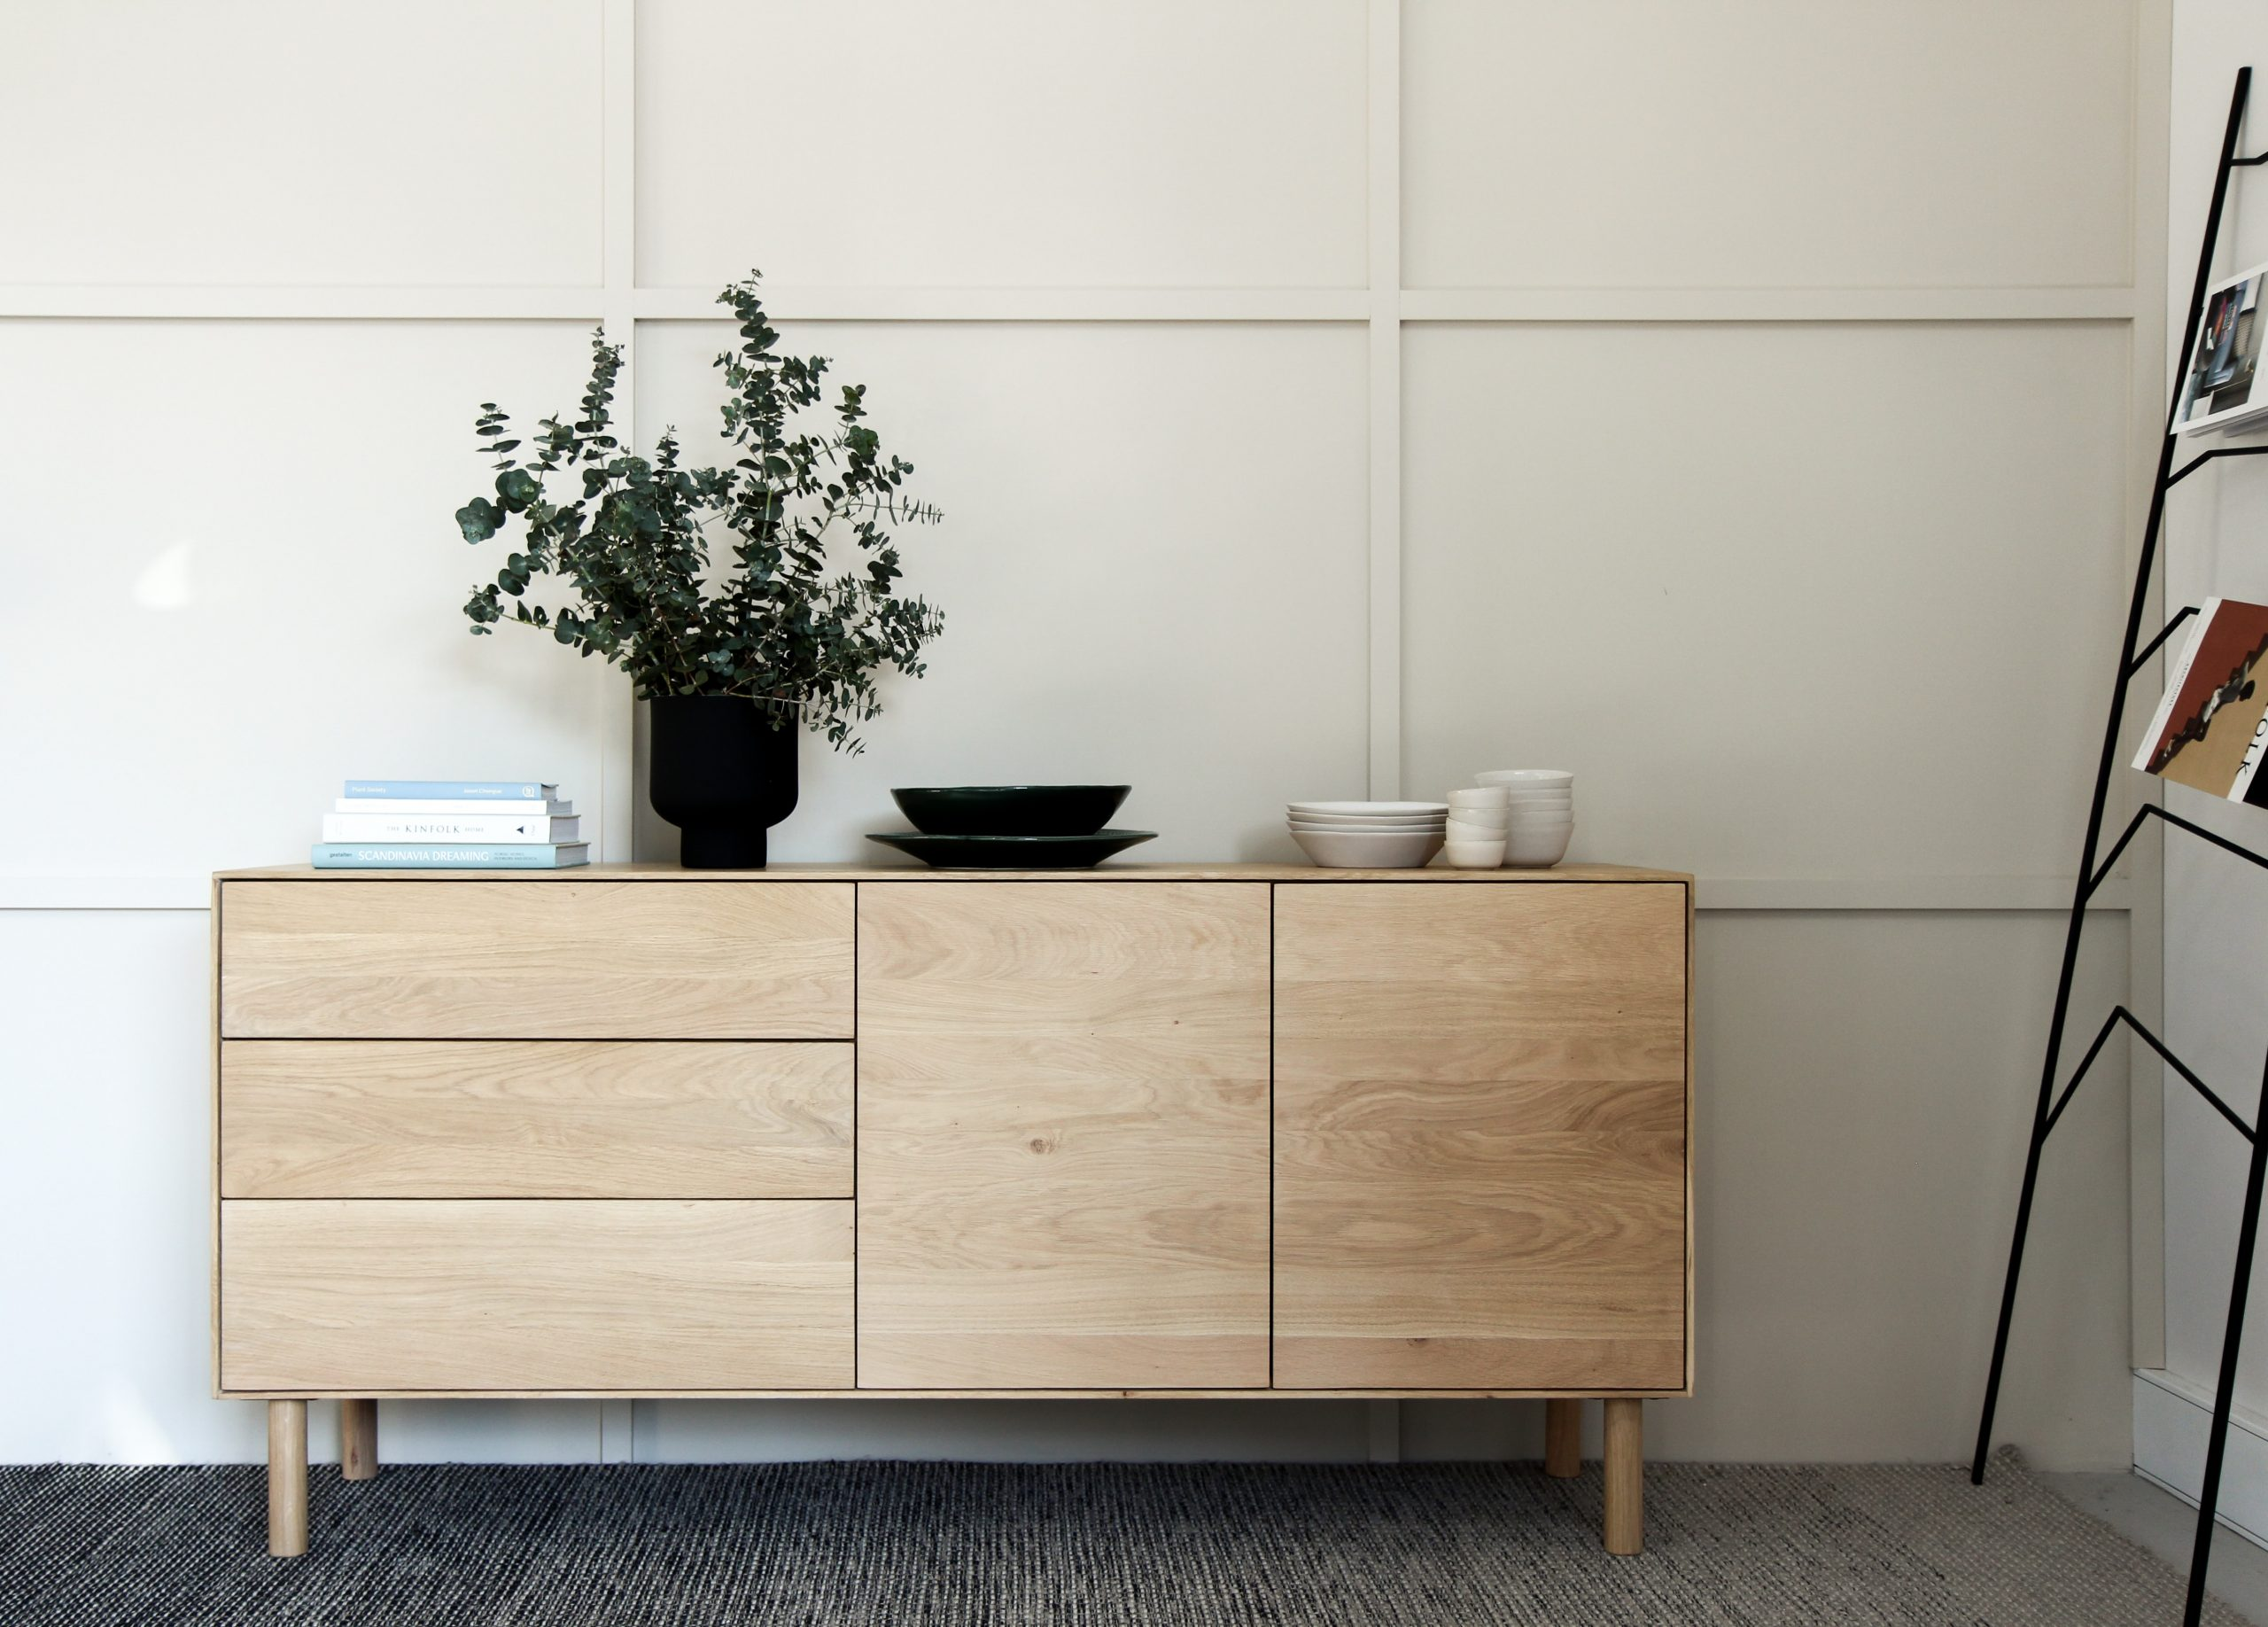 The Purposes of a Sideboard